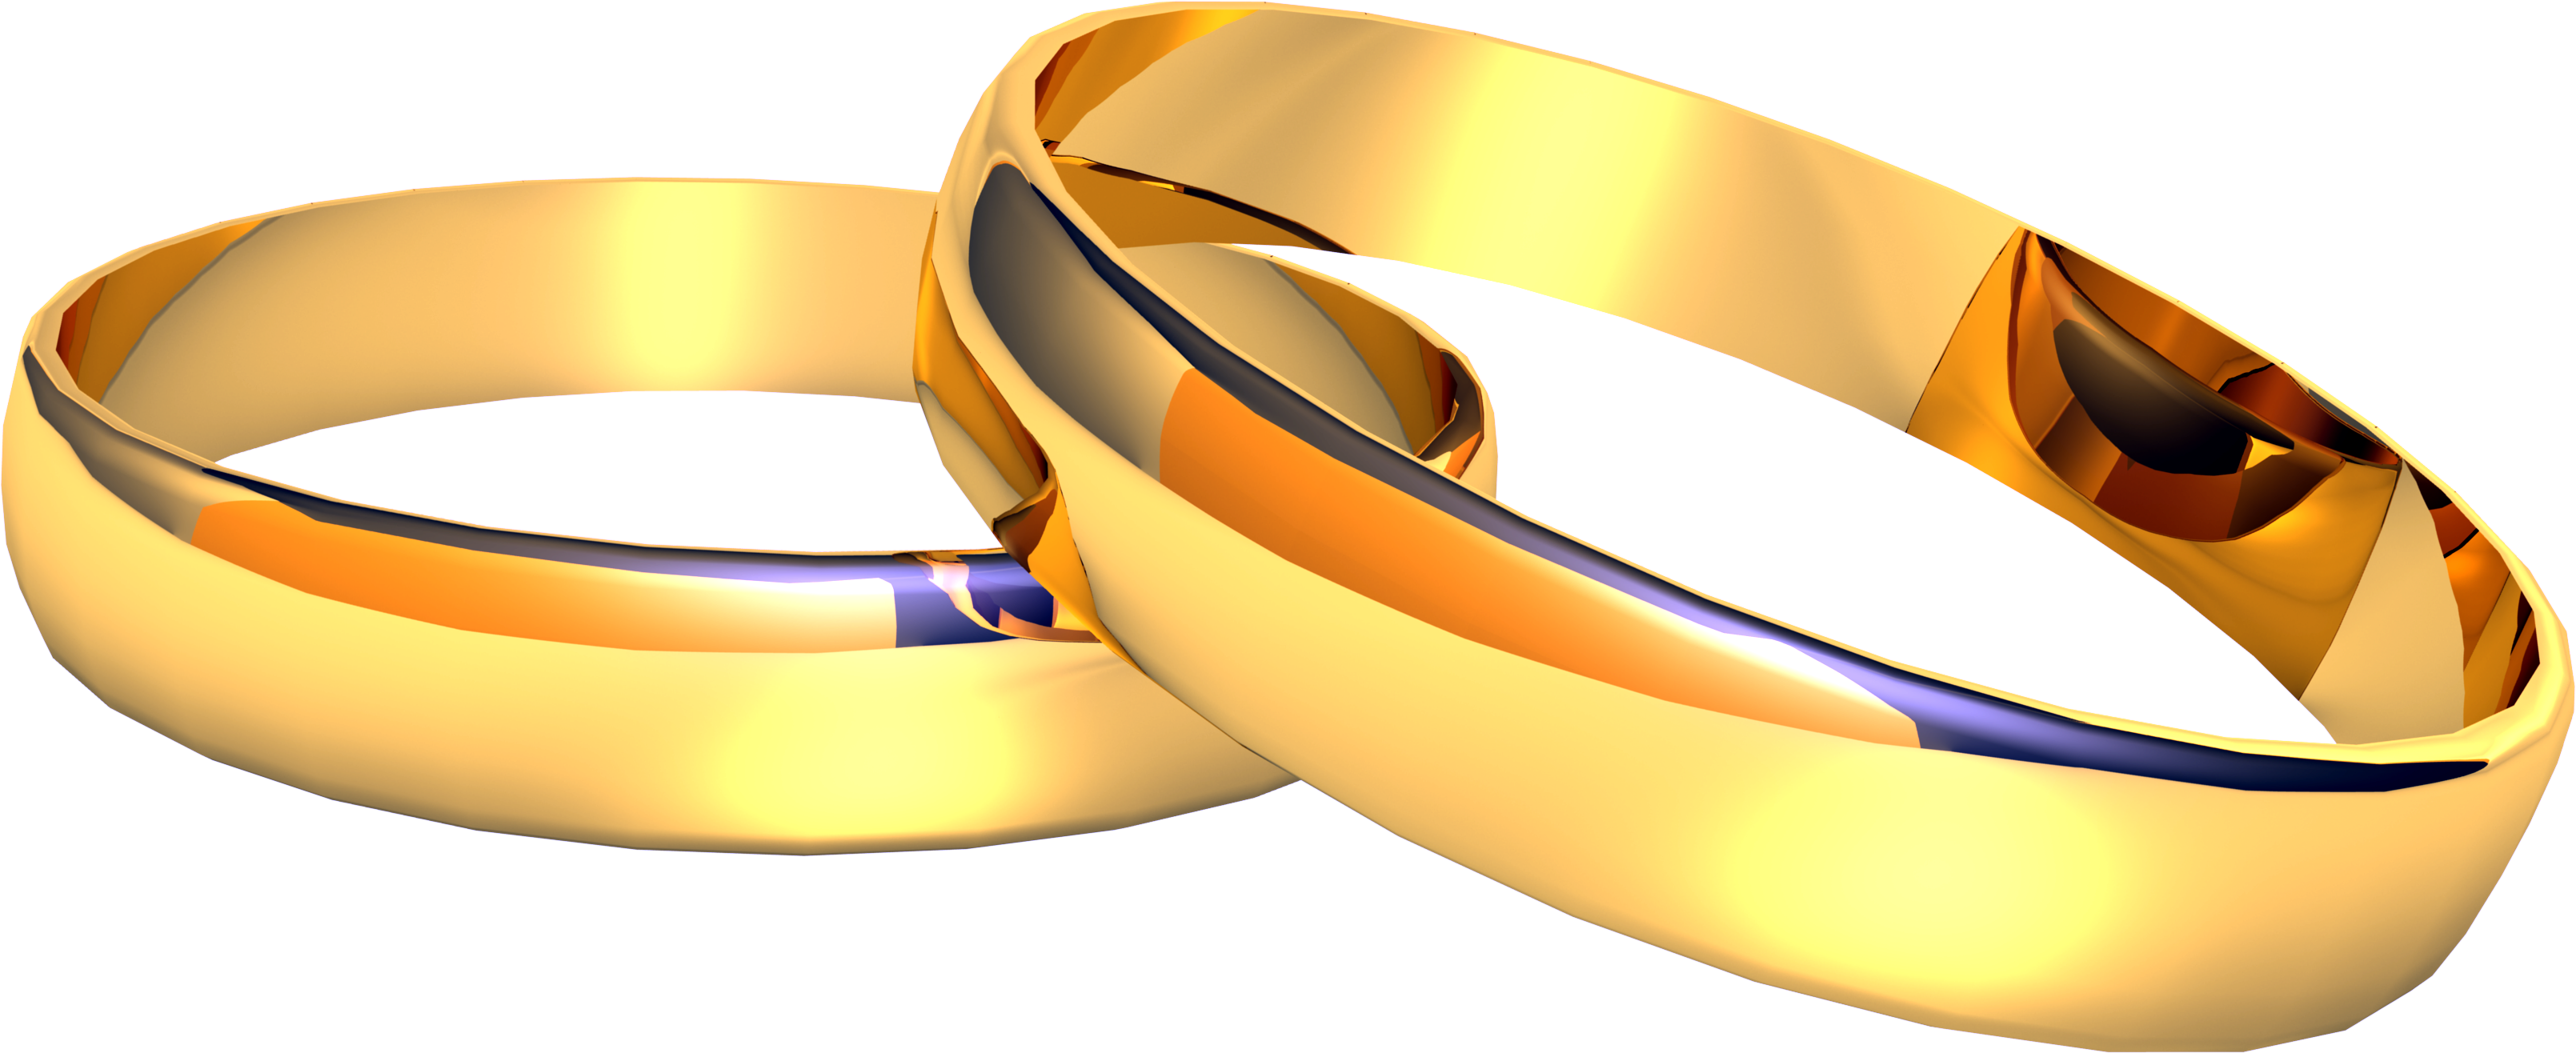 Why No Renewal of Wedding Vows - ZENIT - English